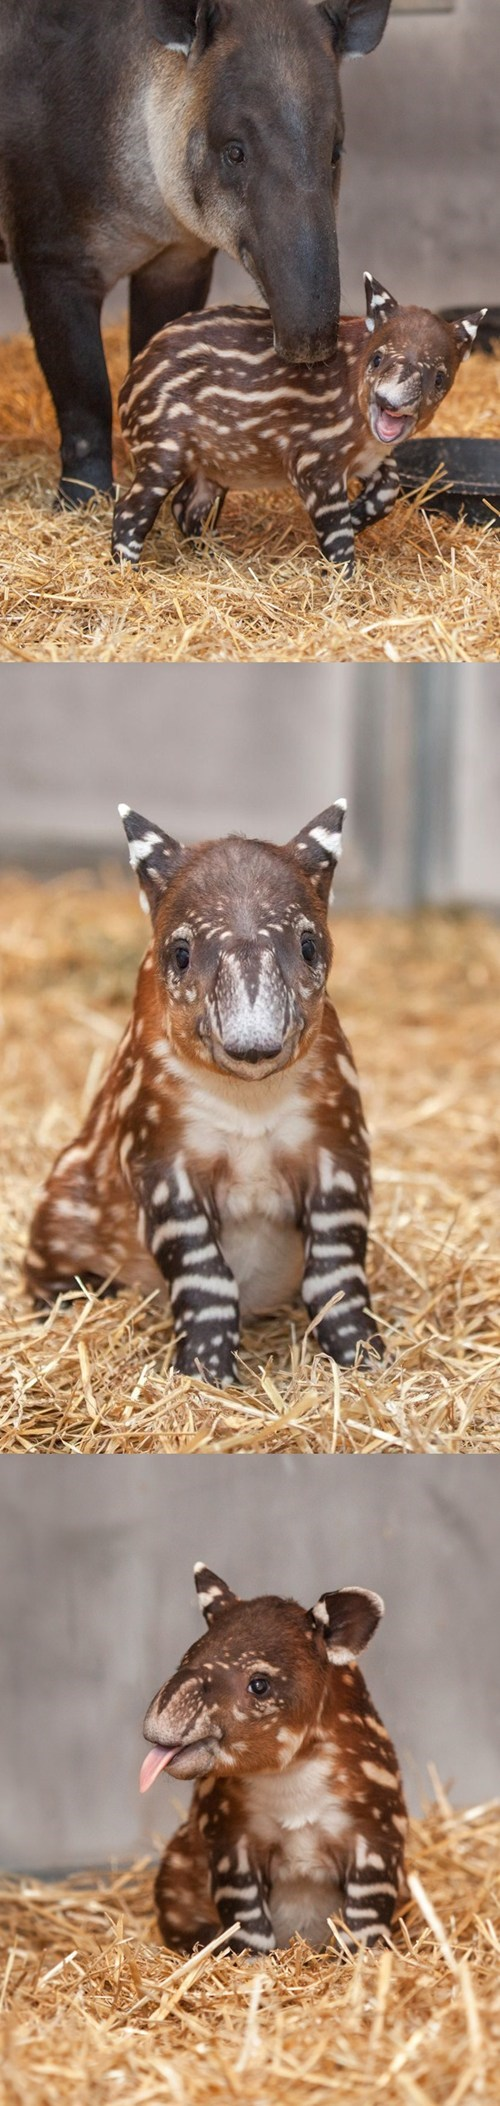 photoset baby cute tapir squee - 7019565824